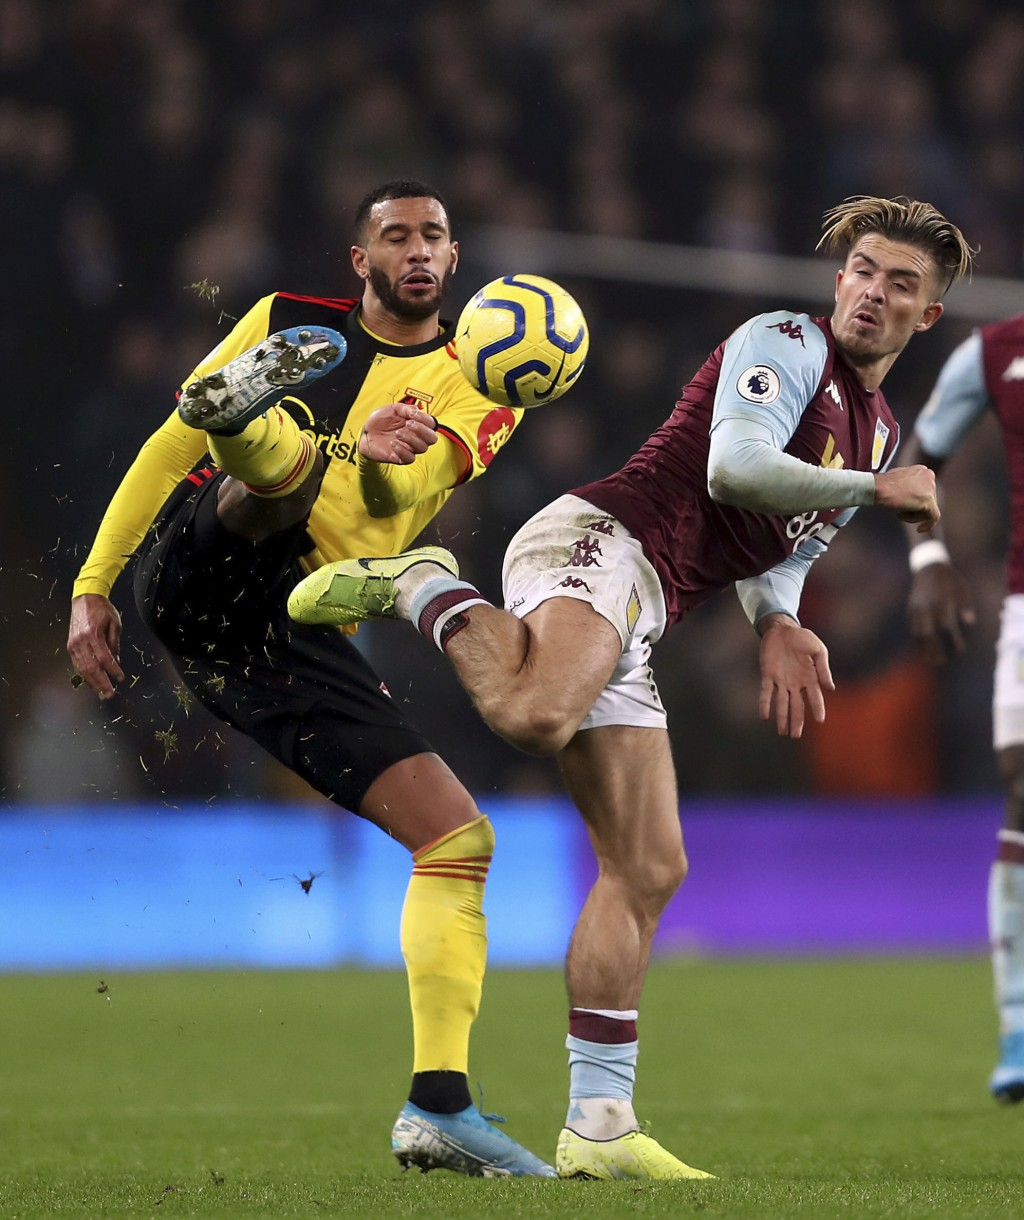 Watford's Etienne Capoue, left, and Aston Villa's Jack Grealish battle for the ball during a Premier League soccer match at Villa Park Tuesday, Jan. 2...